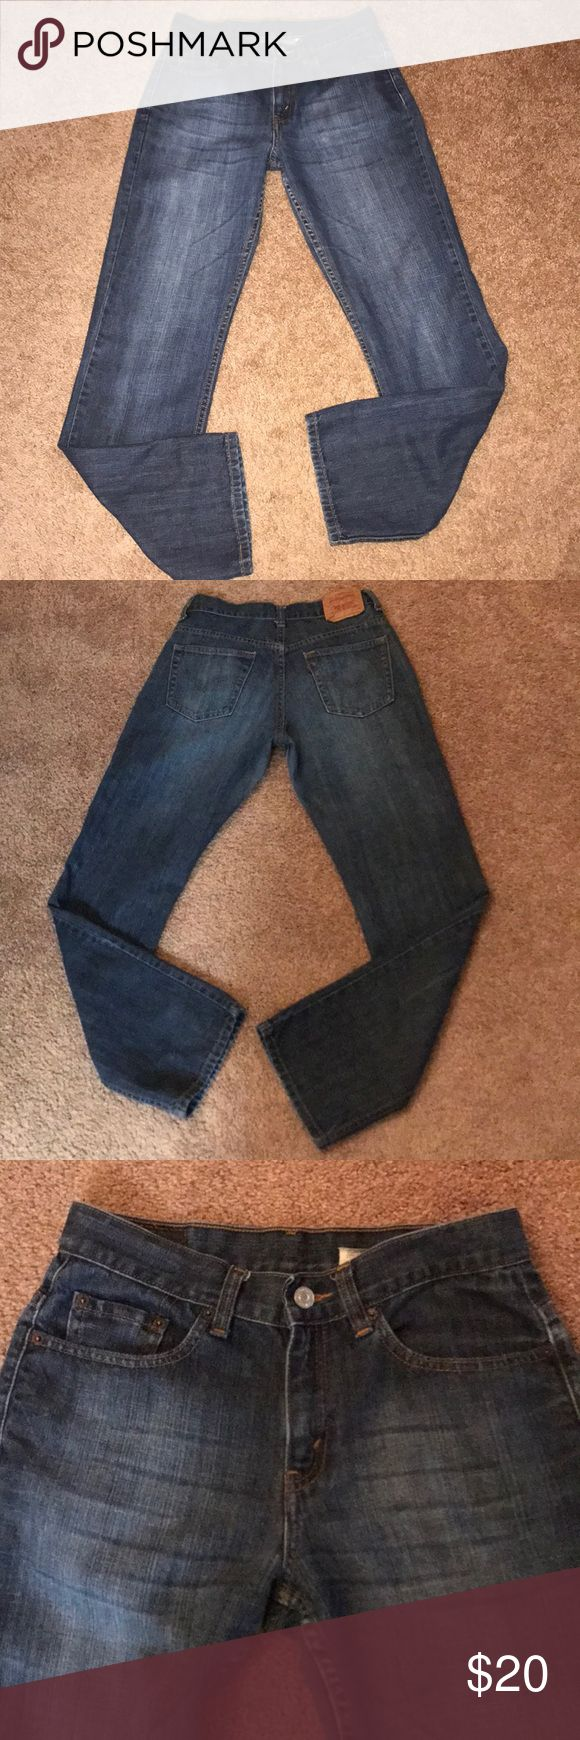 Levi's 505 Woman's Jeans Pre-Owned Levi's 505 Lower Rise Straight Leg Woman's Jeans 100% Cotton Levi's Jeans Straight Leg